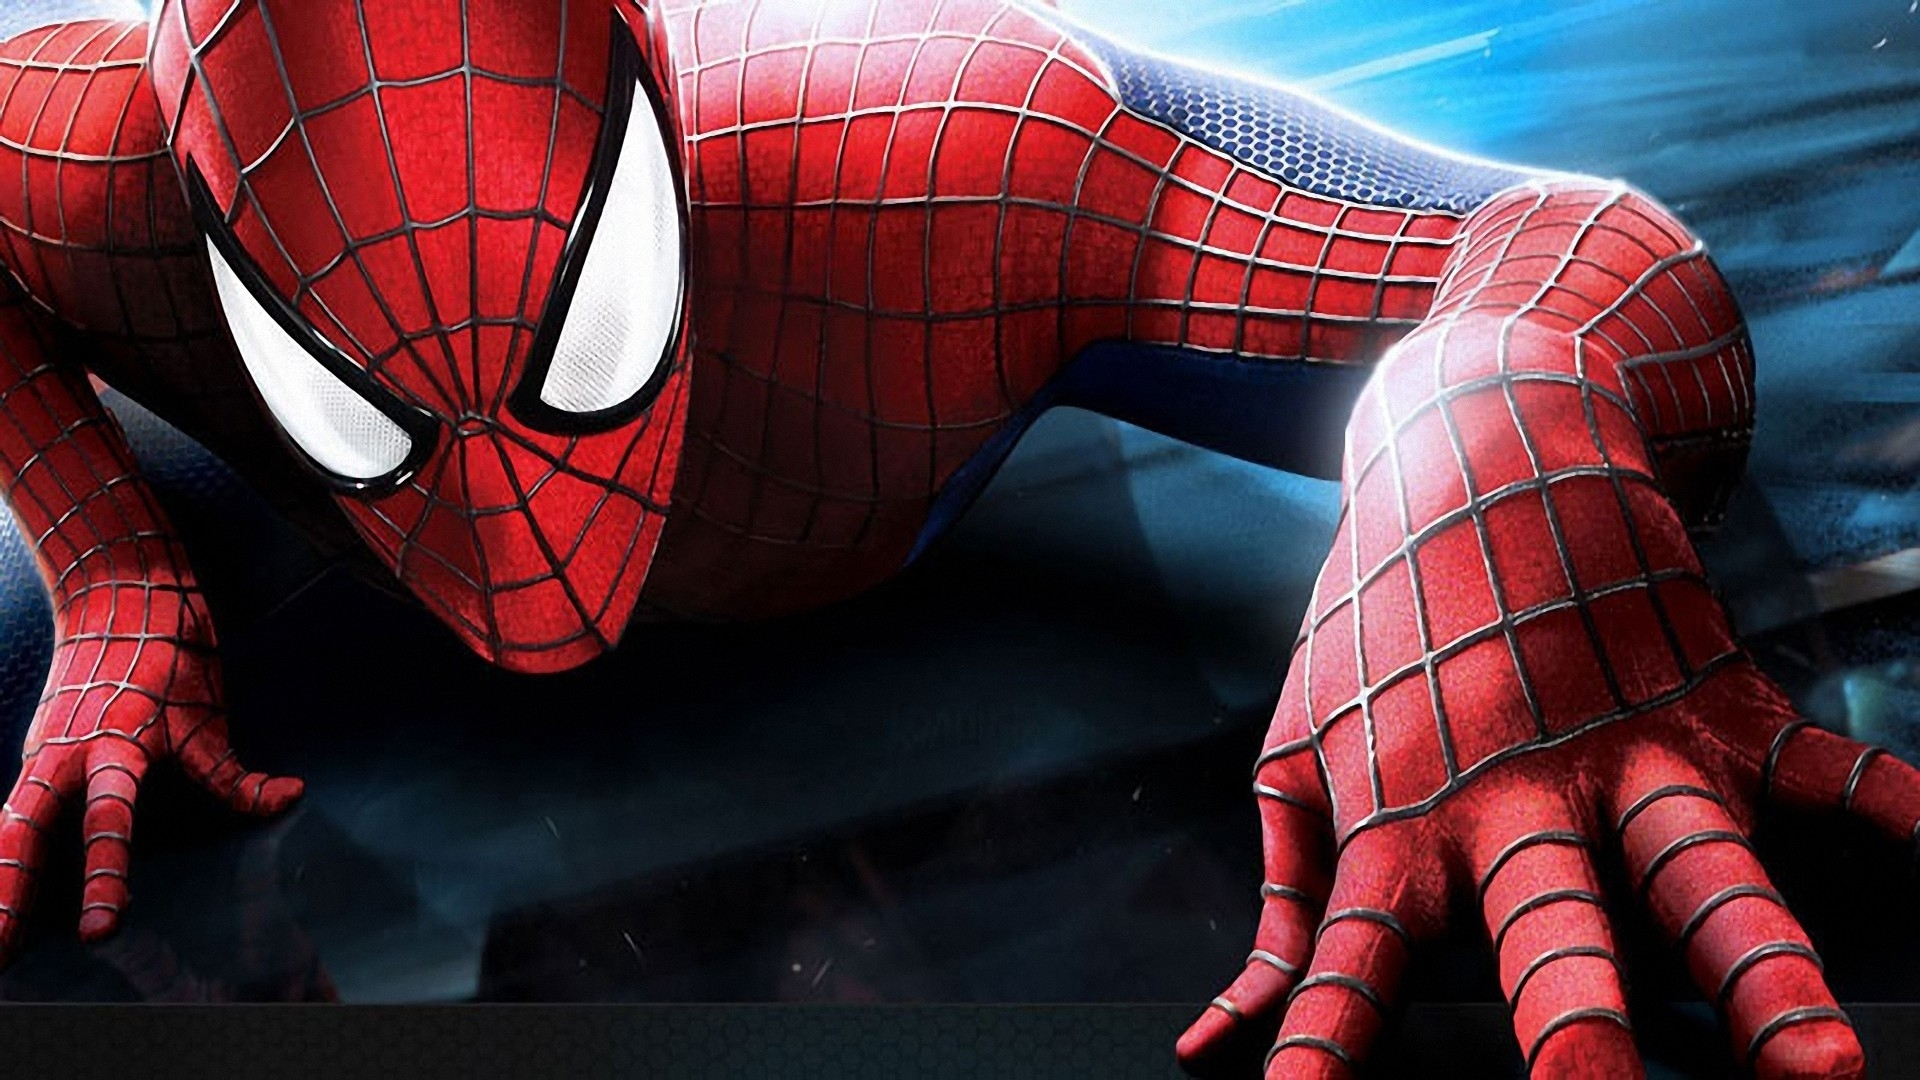 ultimate spider man hd wallpaper (73+ images)